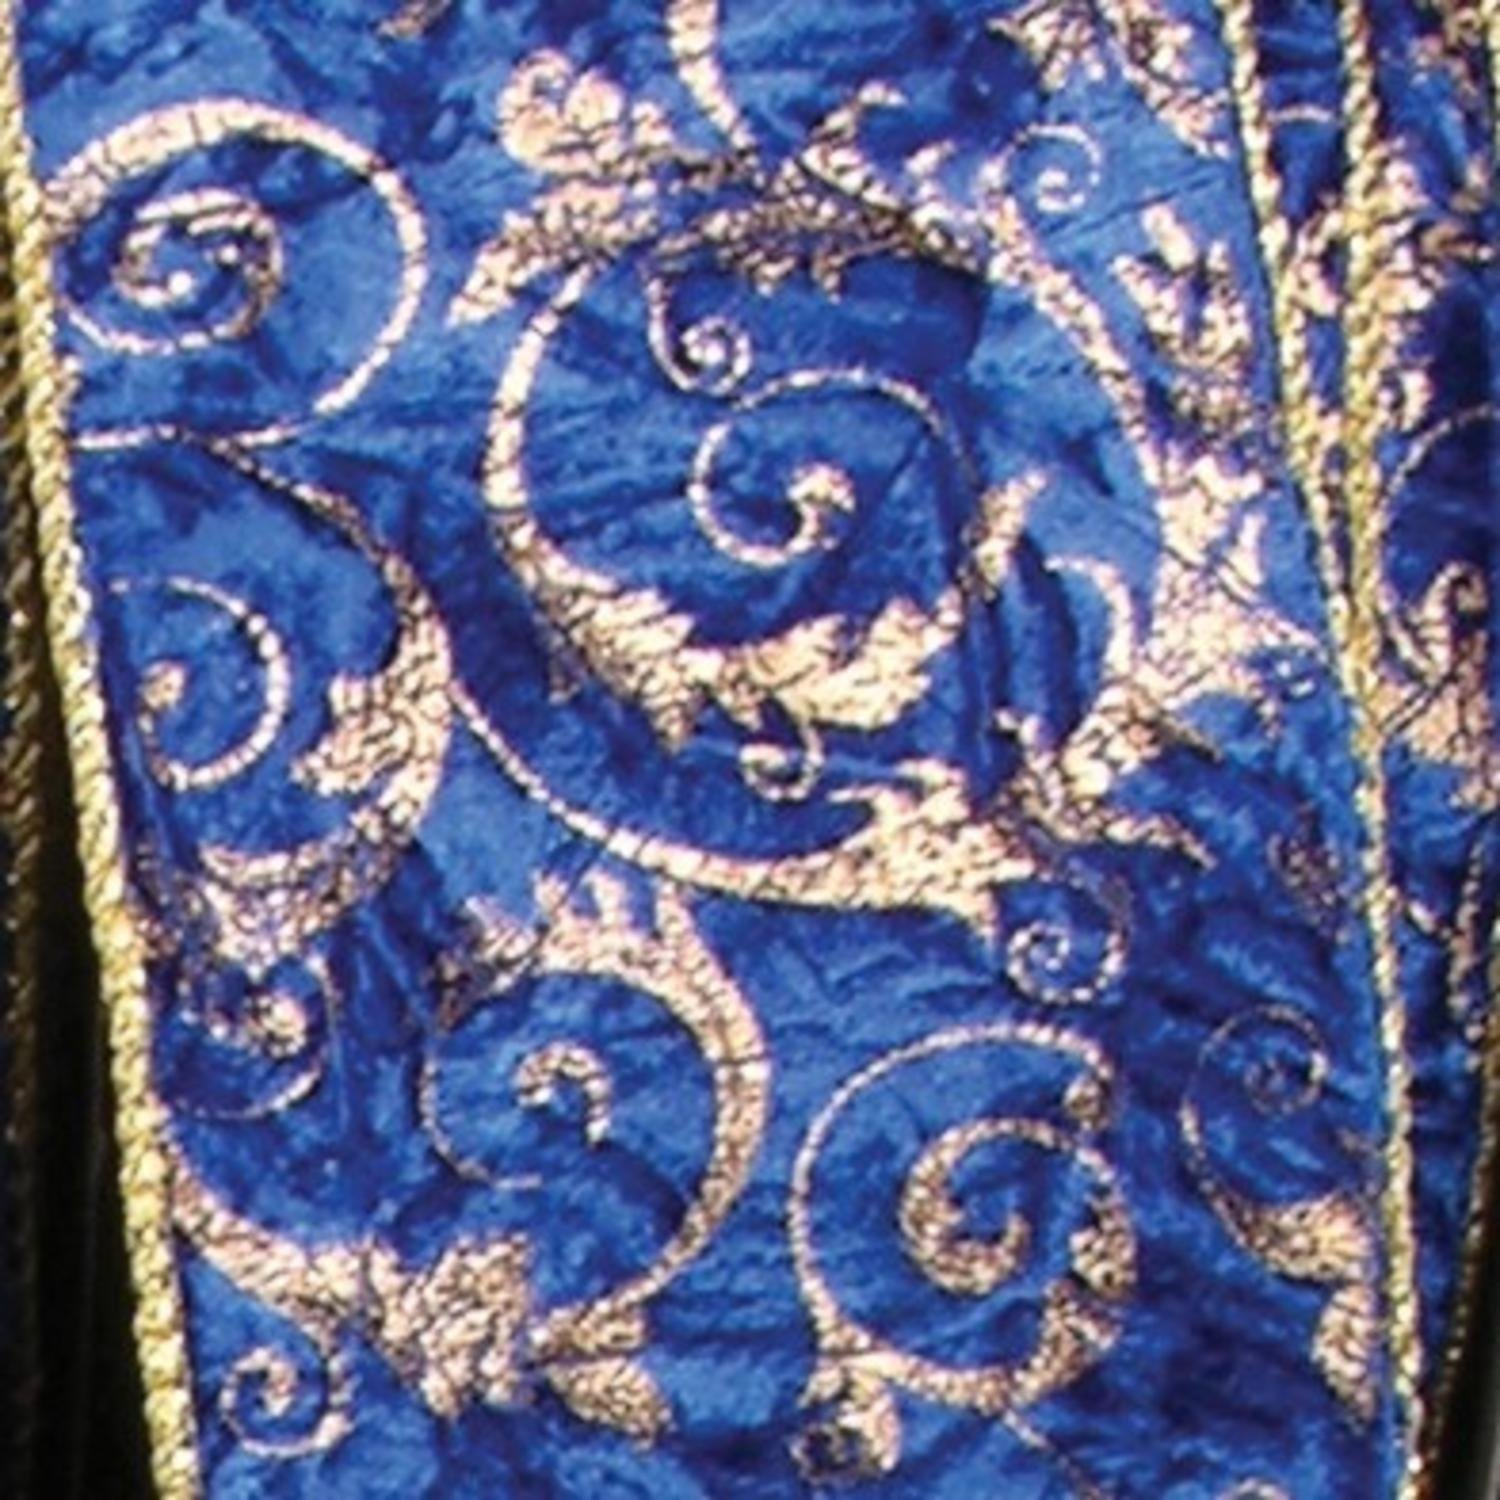 Blue with Gold Cord Edge Wired Fabric Craft Ribbon 4'' x 20 Yards